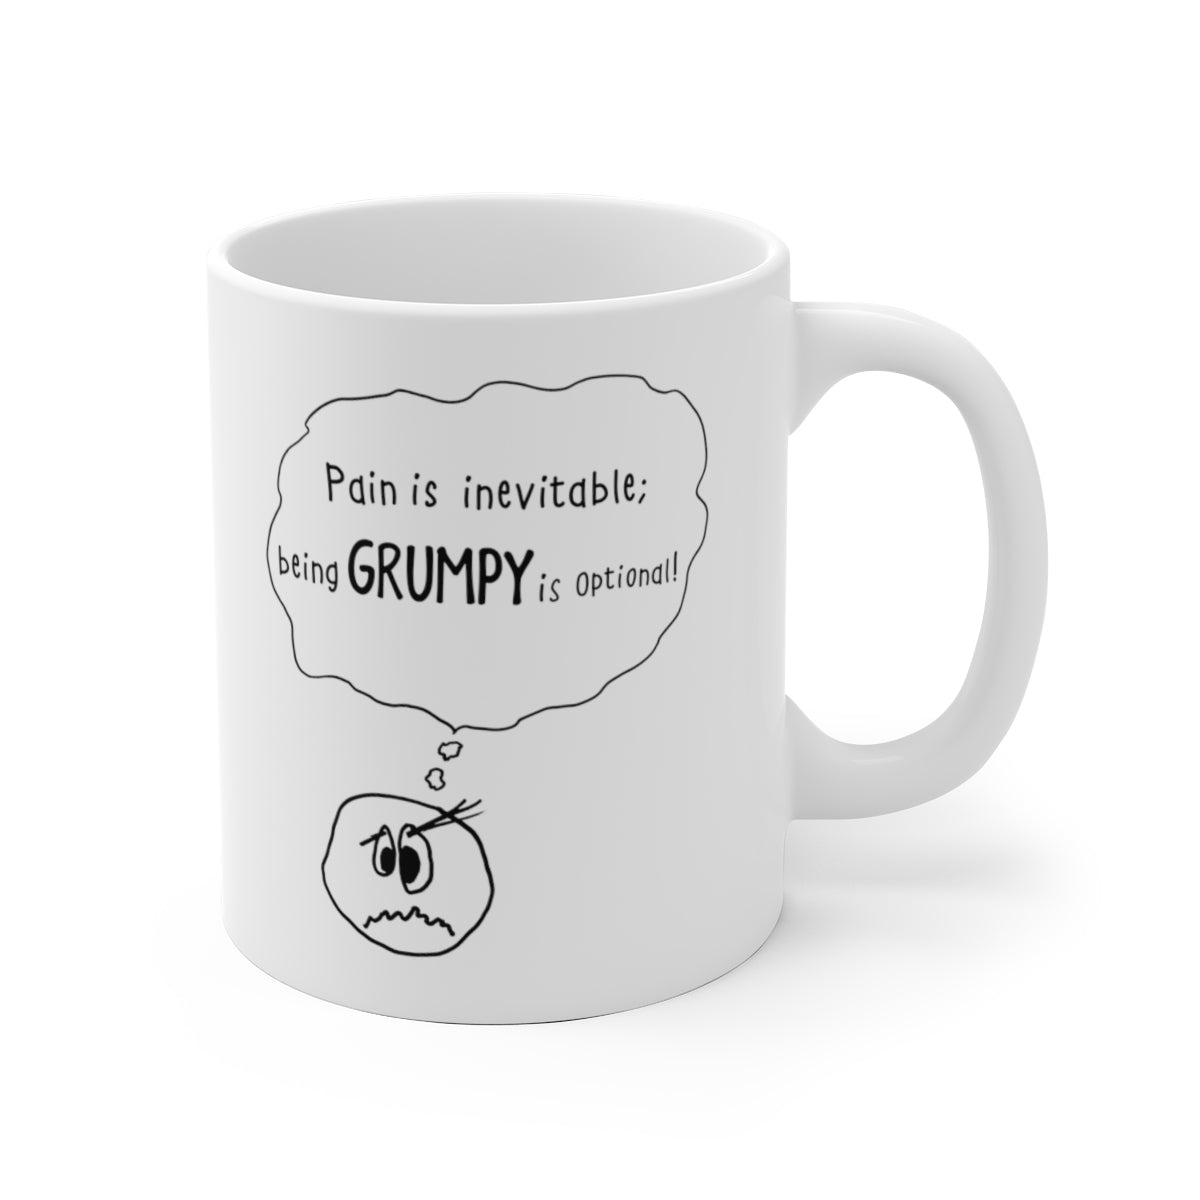 Grumpy is Optional: Mug